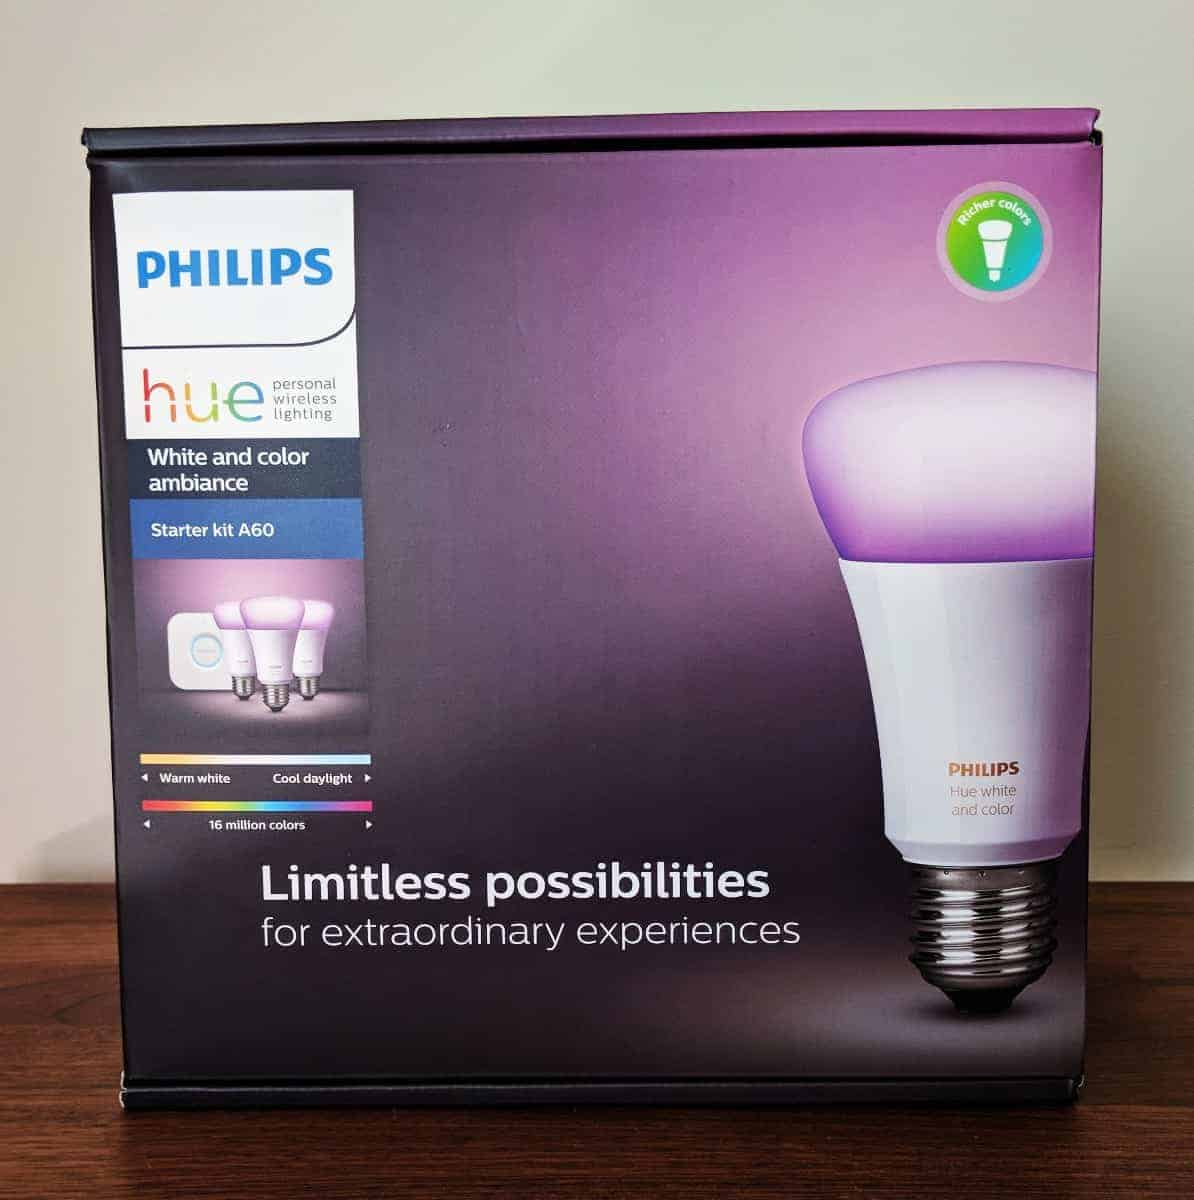 Philips Hue Included Philips Hue Smart Lighting Review The Streaming Blog